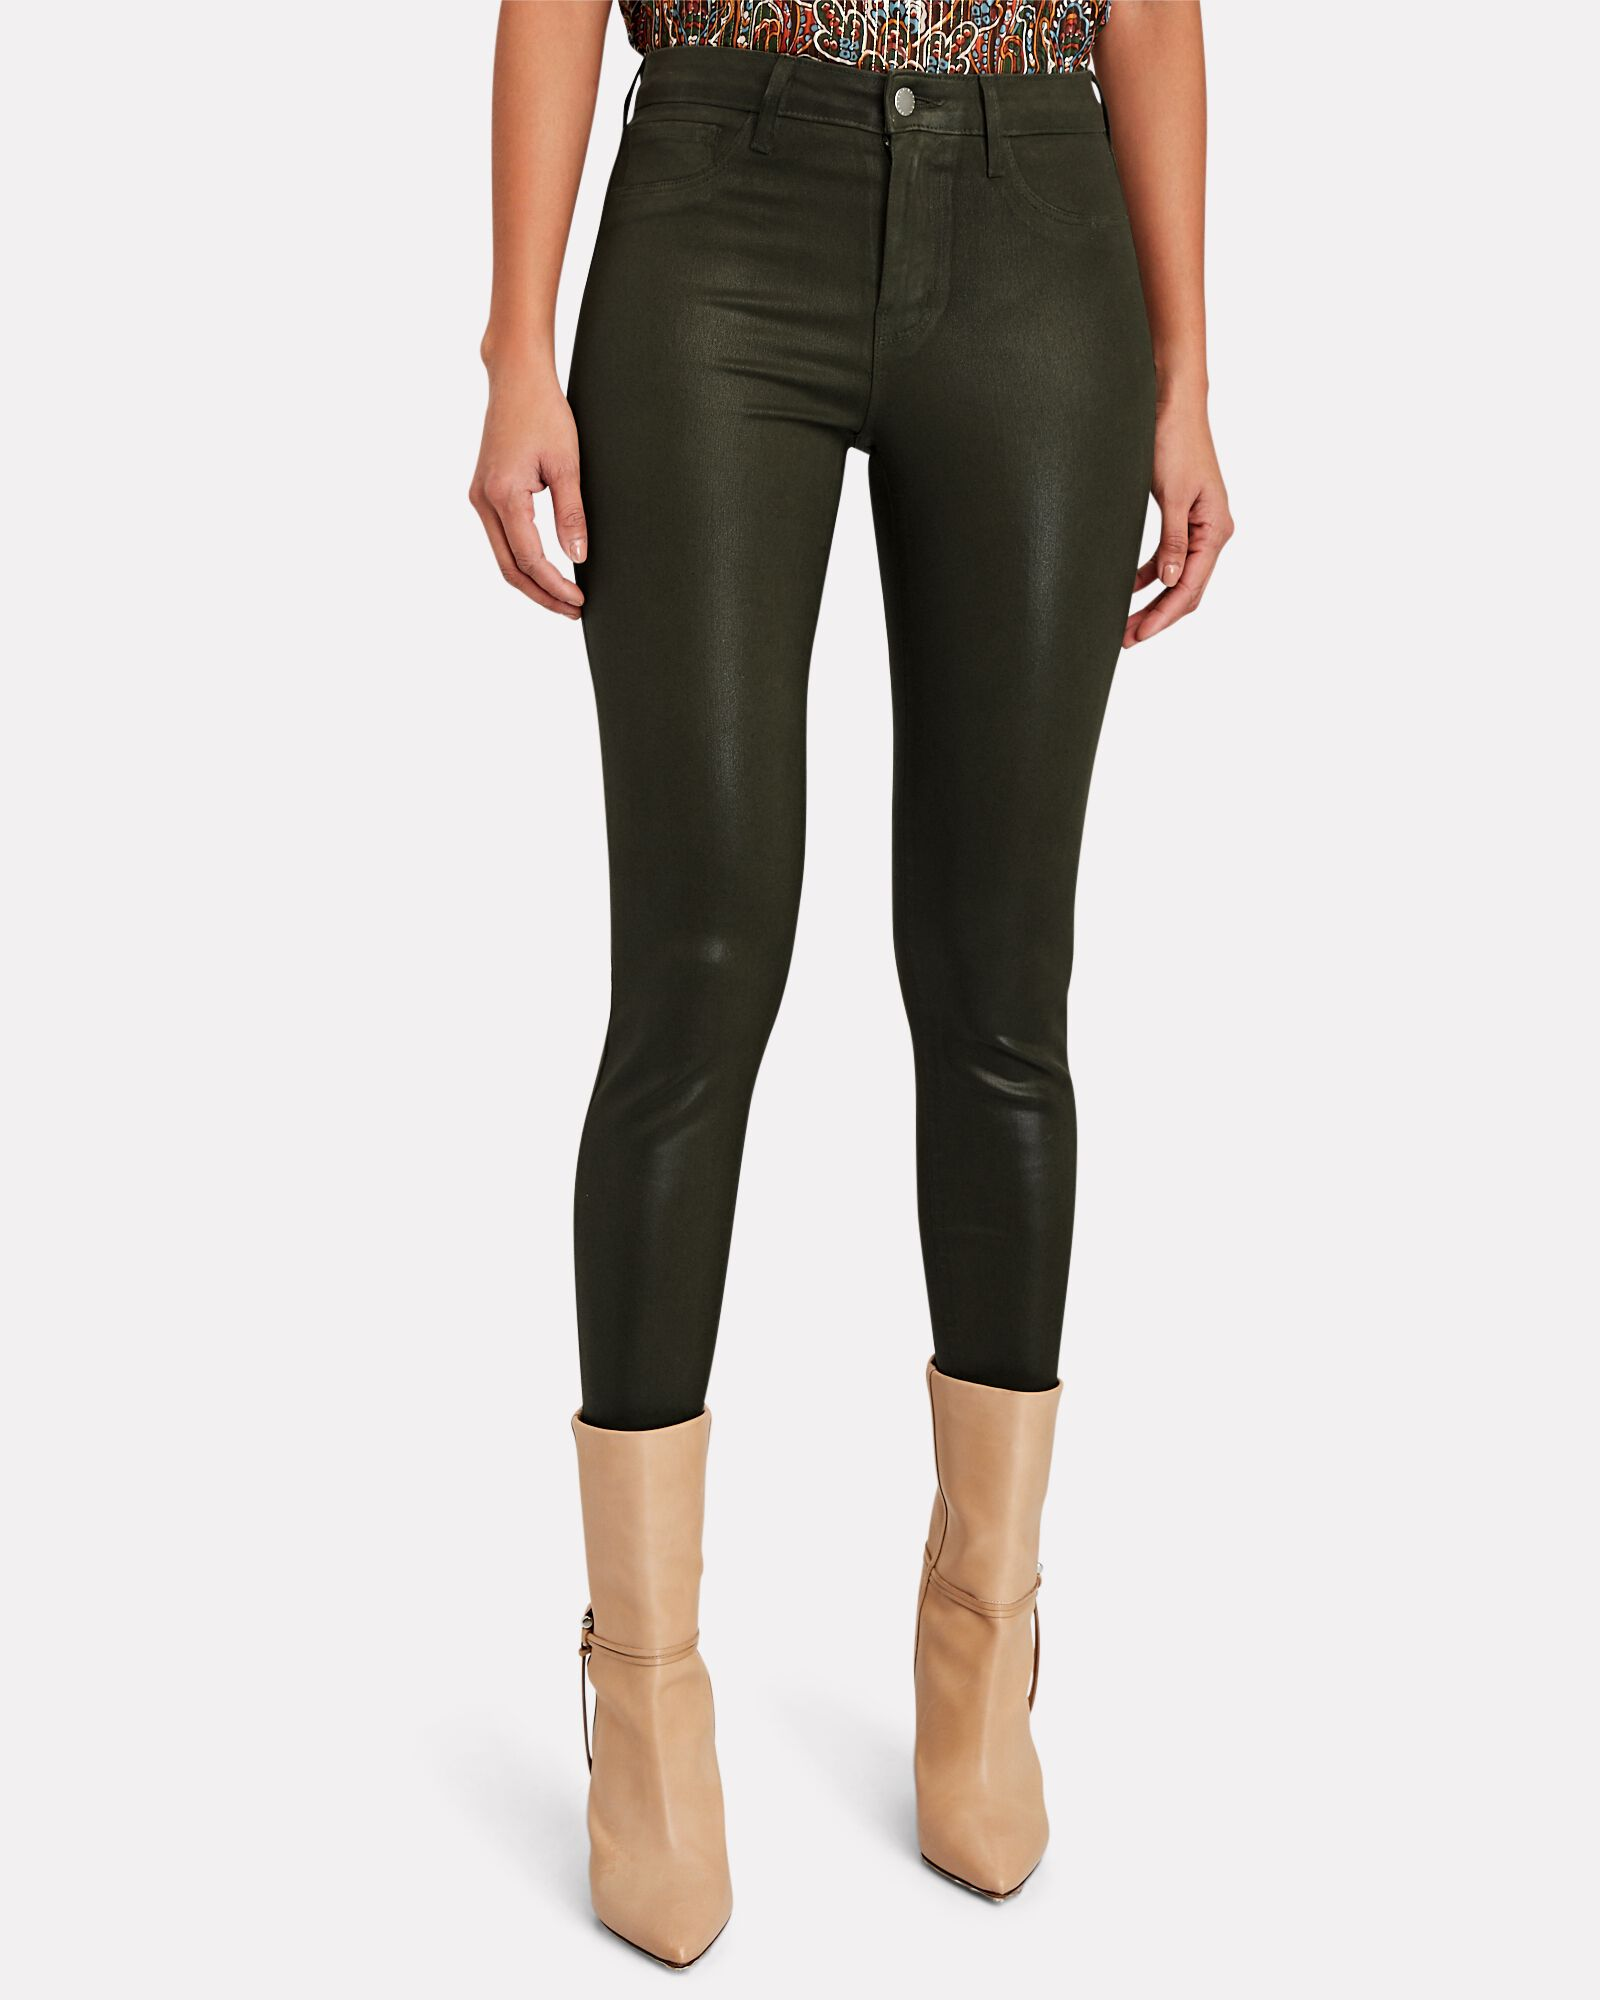 Margot Coated Skinny Jeans, OLIVE/ARMY, hi-res